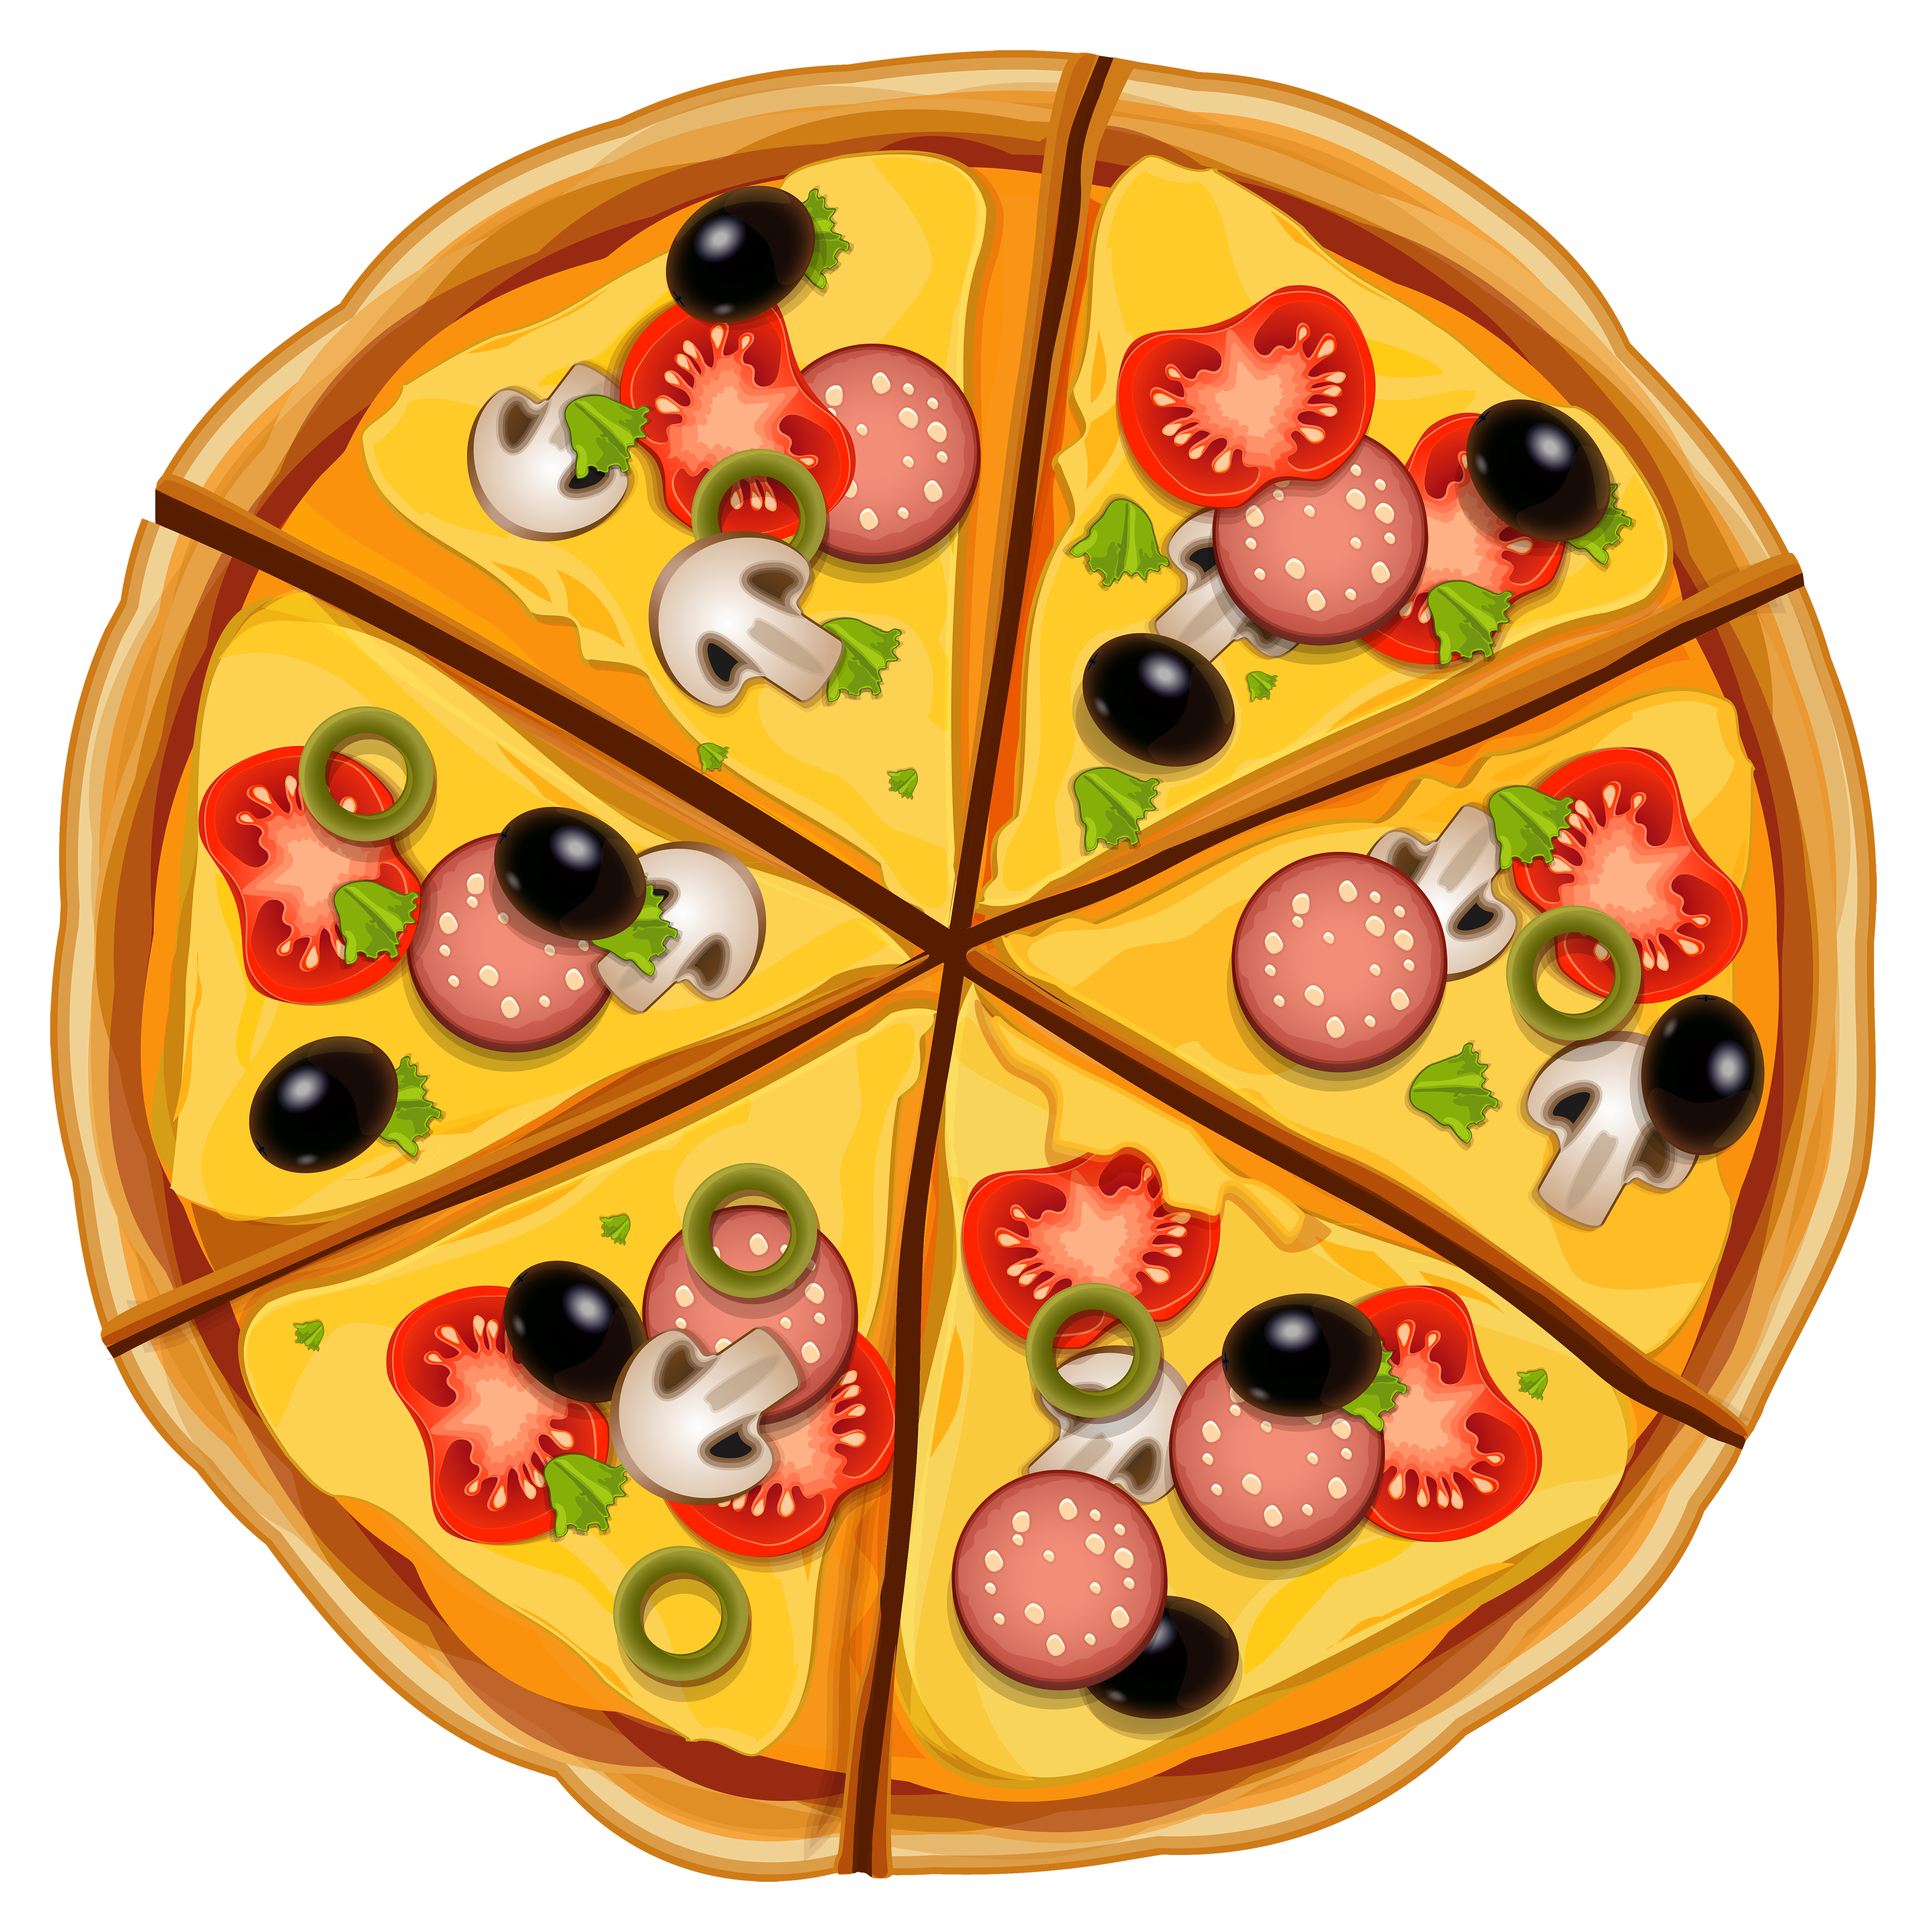 Clipart images of pizza svg black and white download Pizza PNG Clipart - Best WEB Clipart svg black and white download